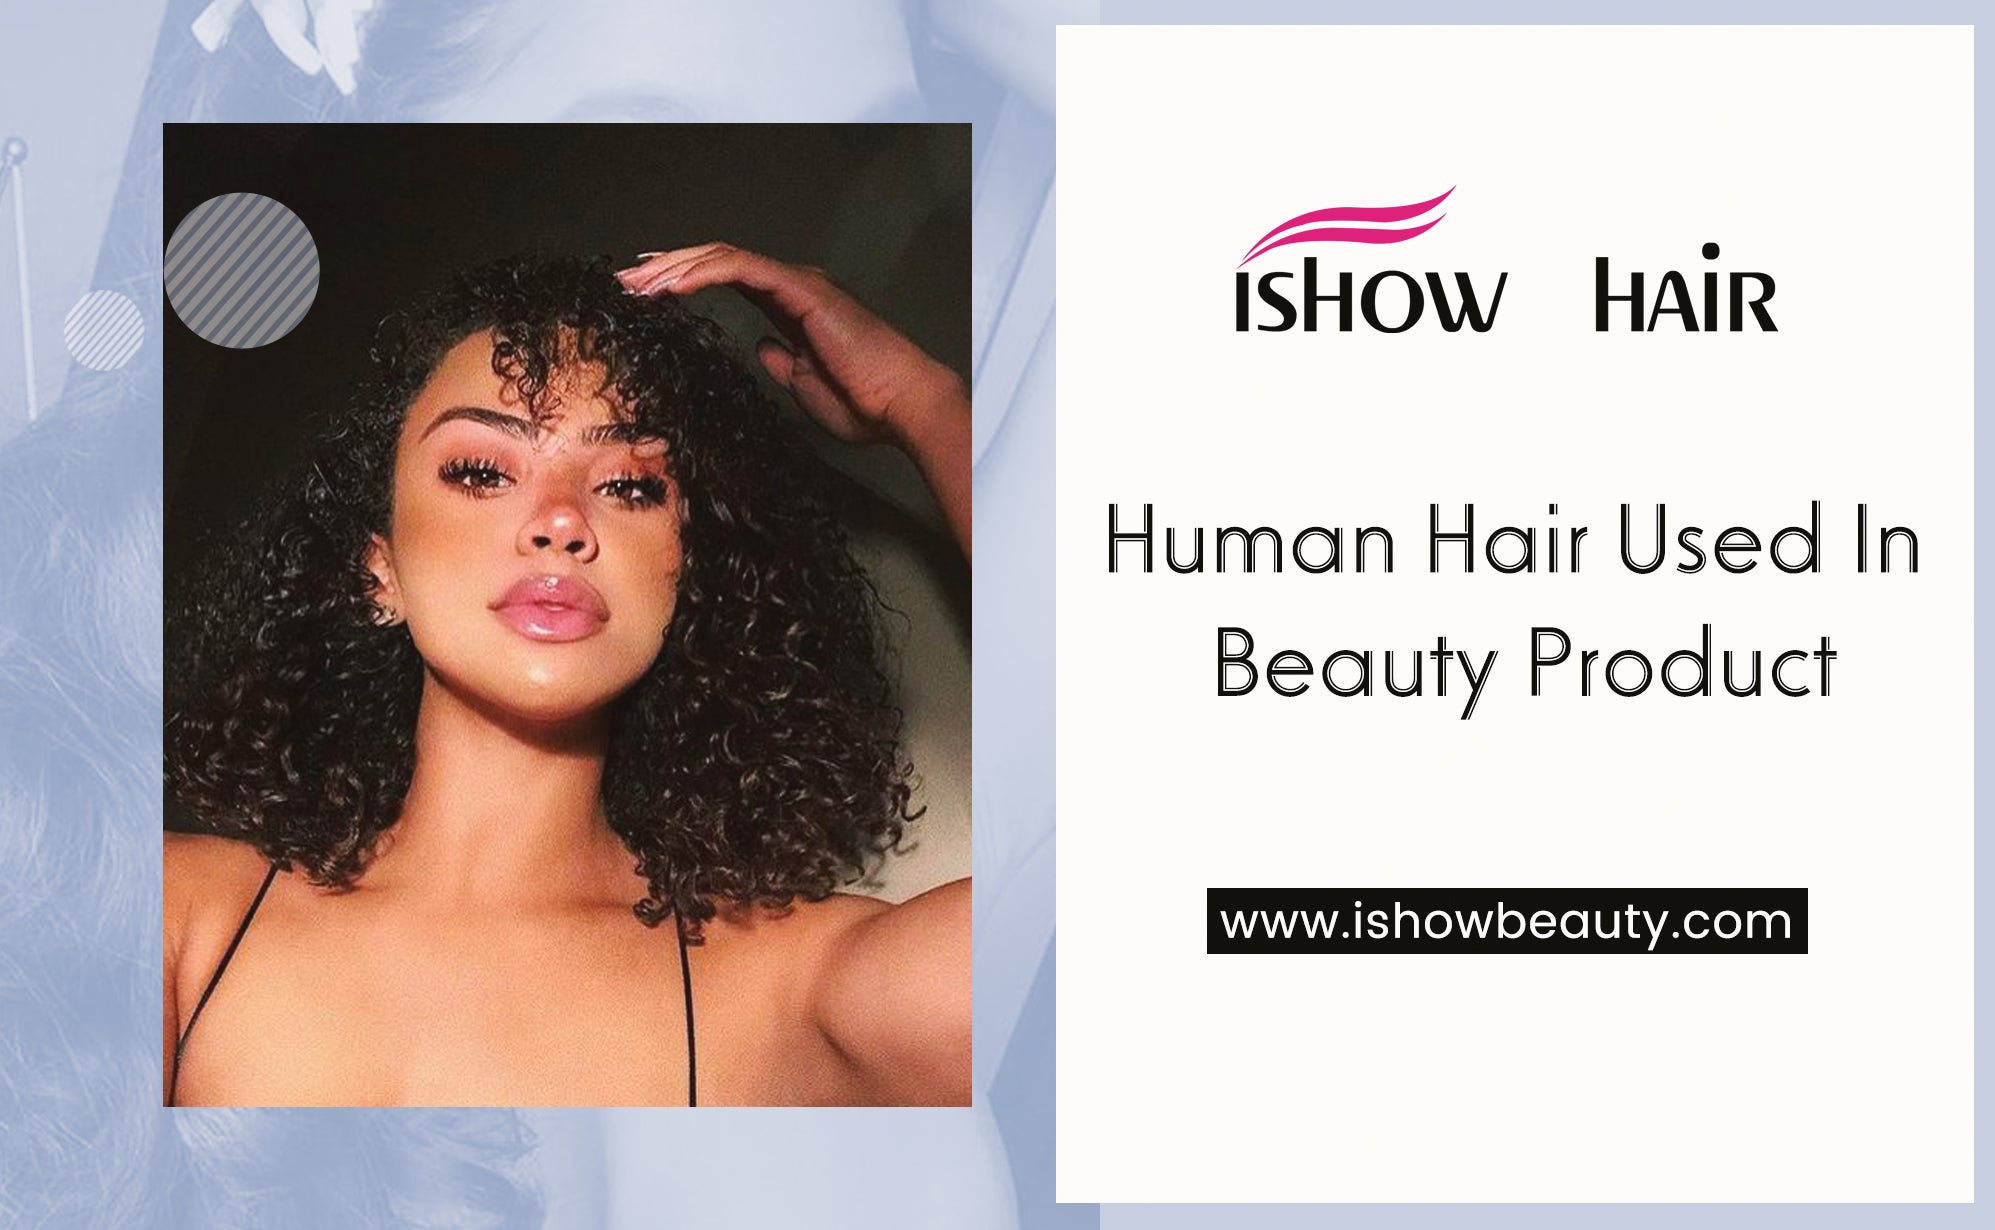 Human Hair Used In Beauty Product